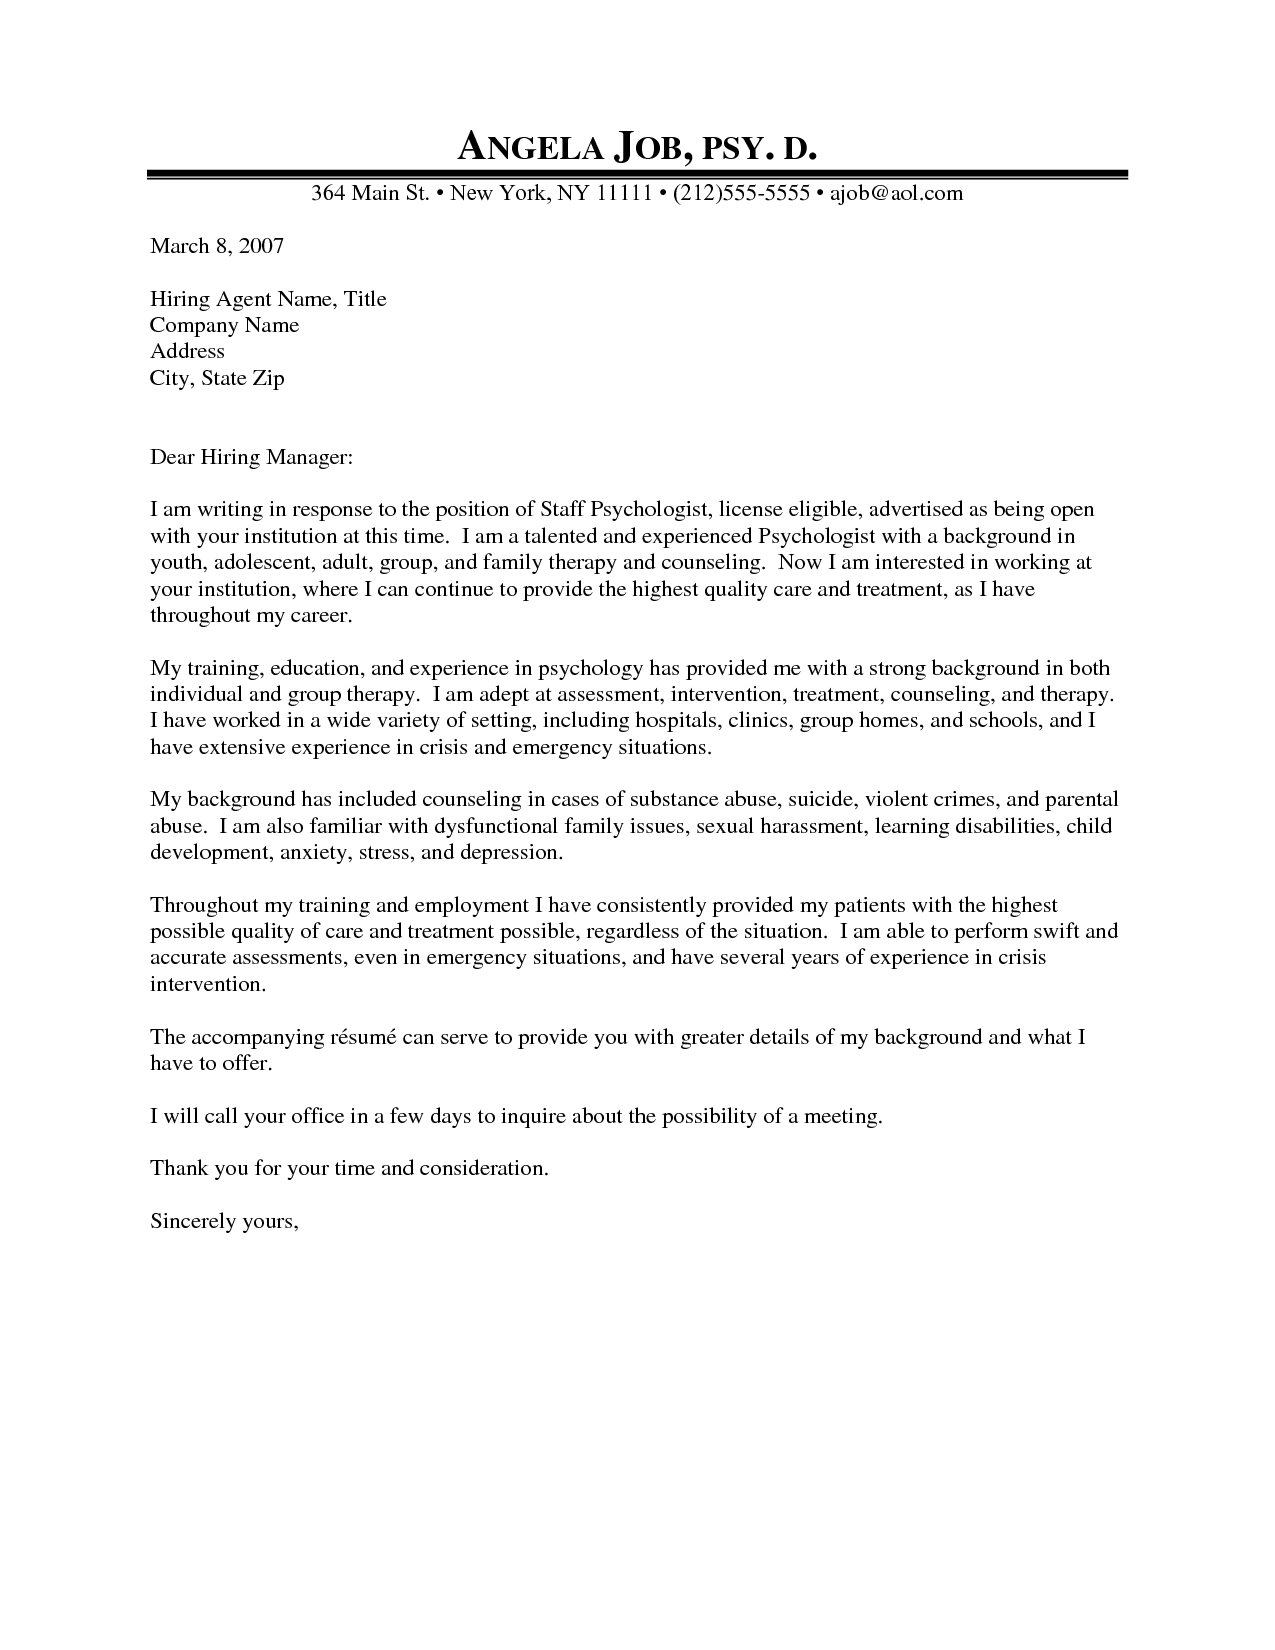 professional counseling cover letter psychologist cover letter example - Counseling Cover Letter Examples